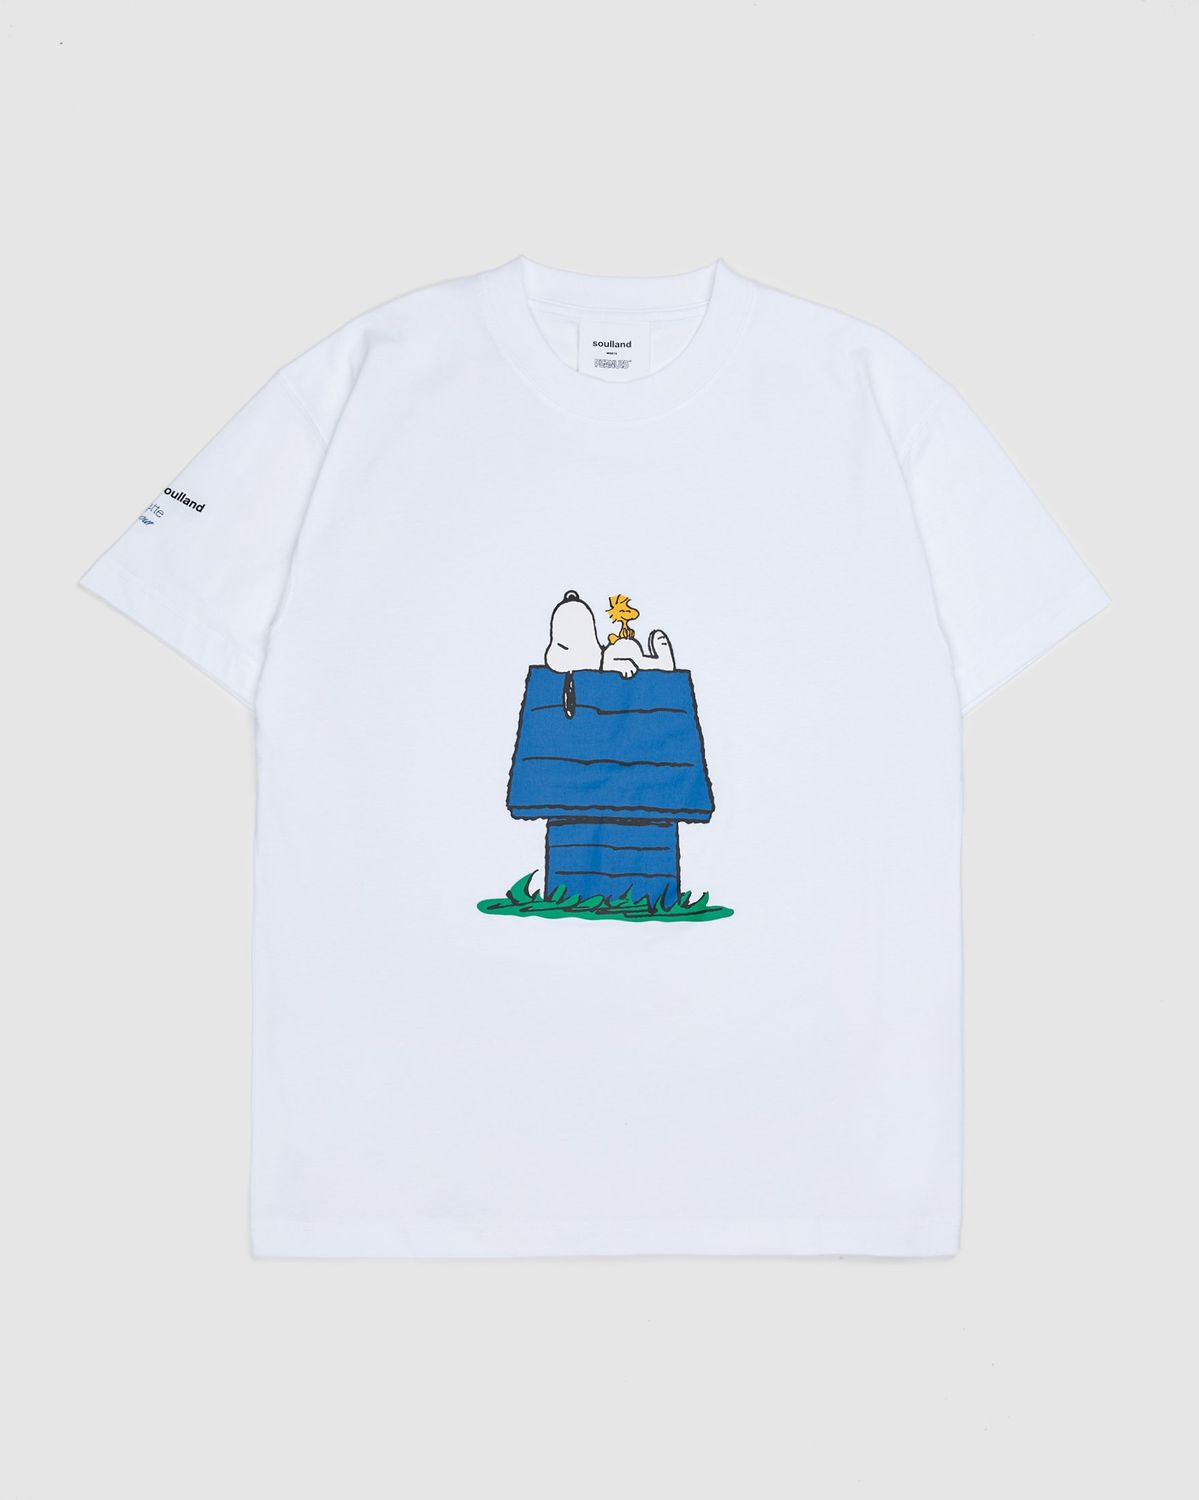 Colette Mon Amour x Soulland —  Snoopy Bed White T-Shirt - Image 1